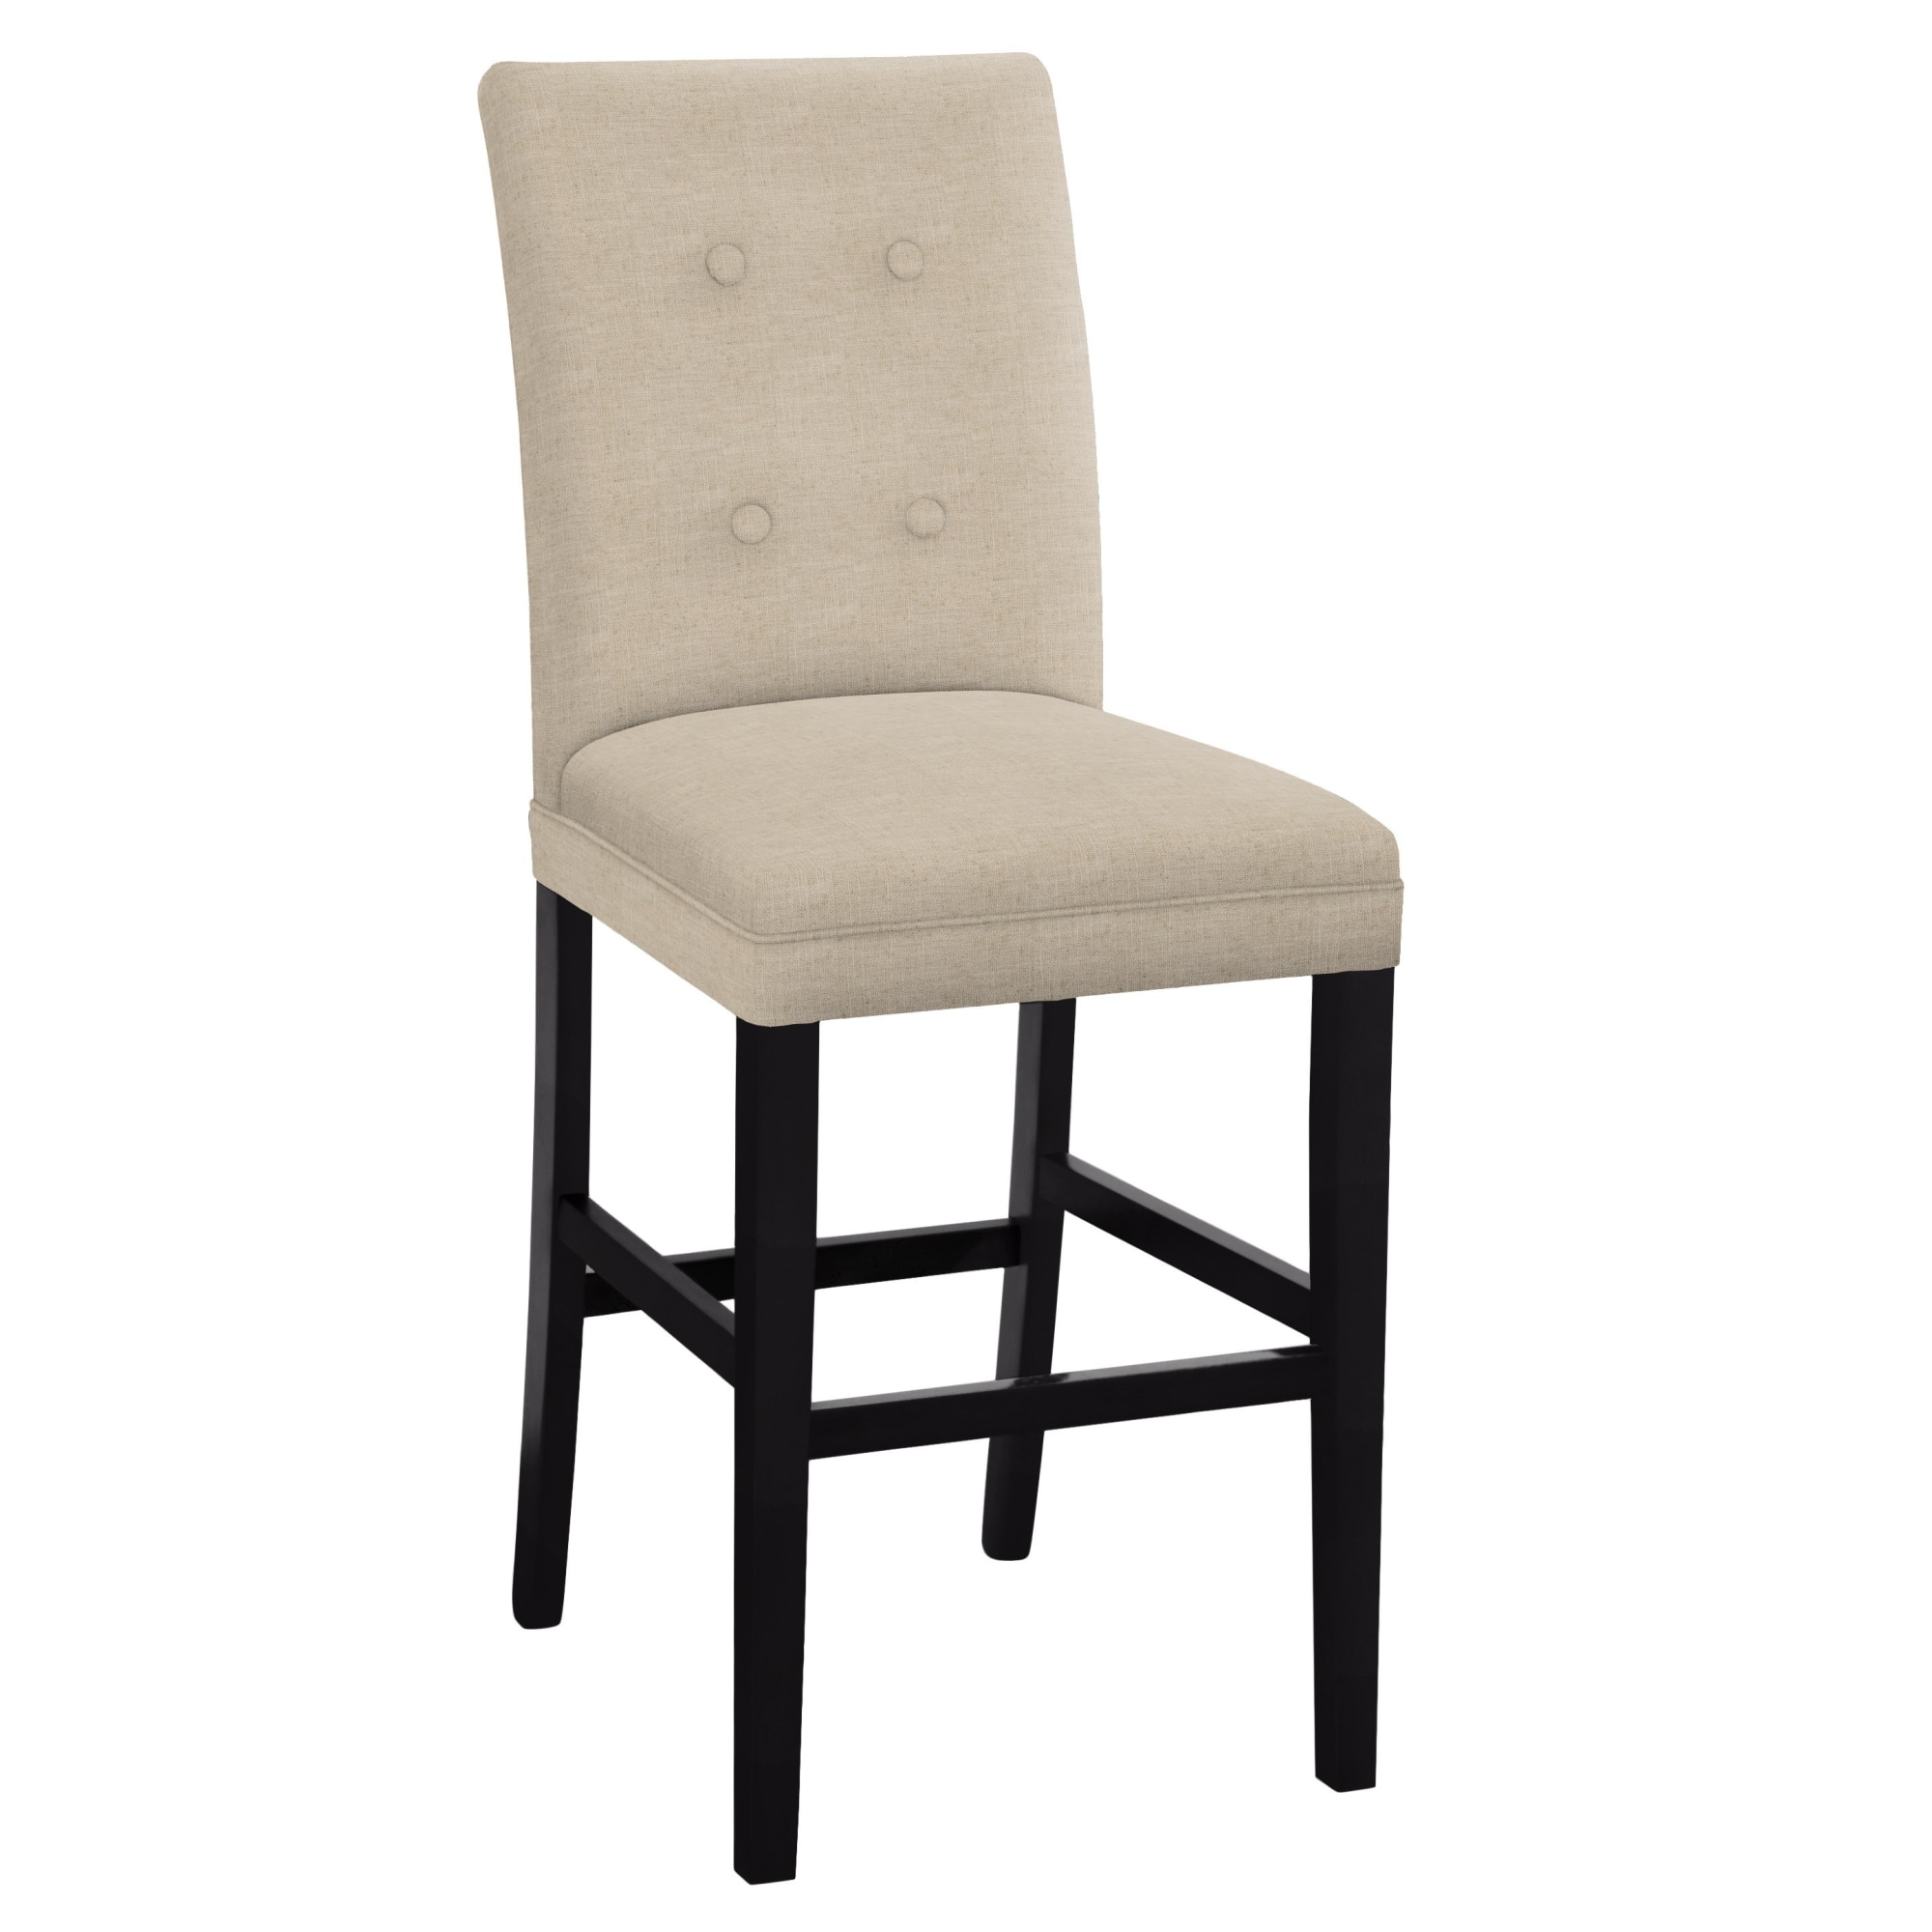 Image for 7405 Sharon Bar Stool with Buttons from Hekman Official Website